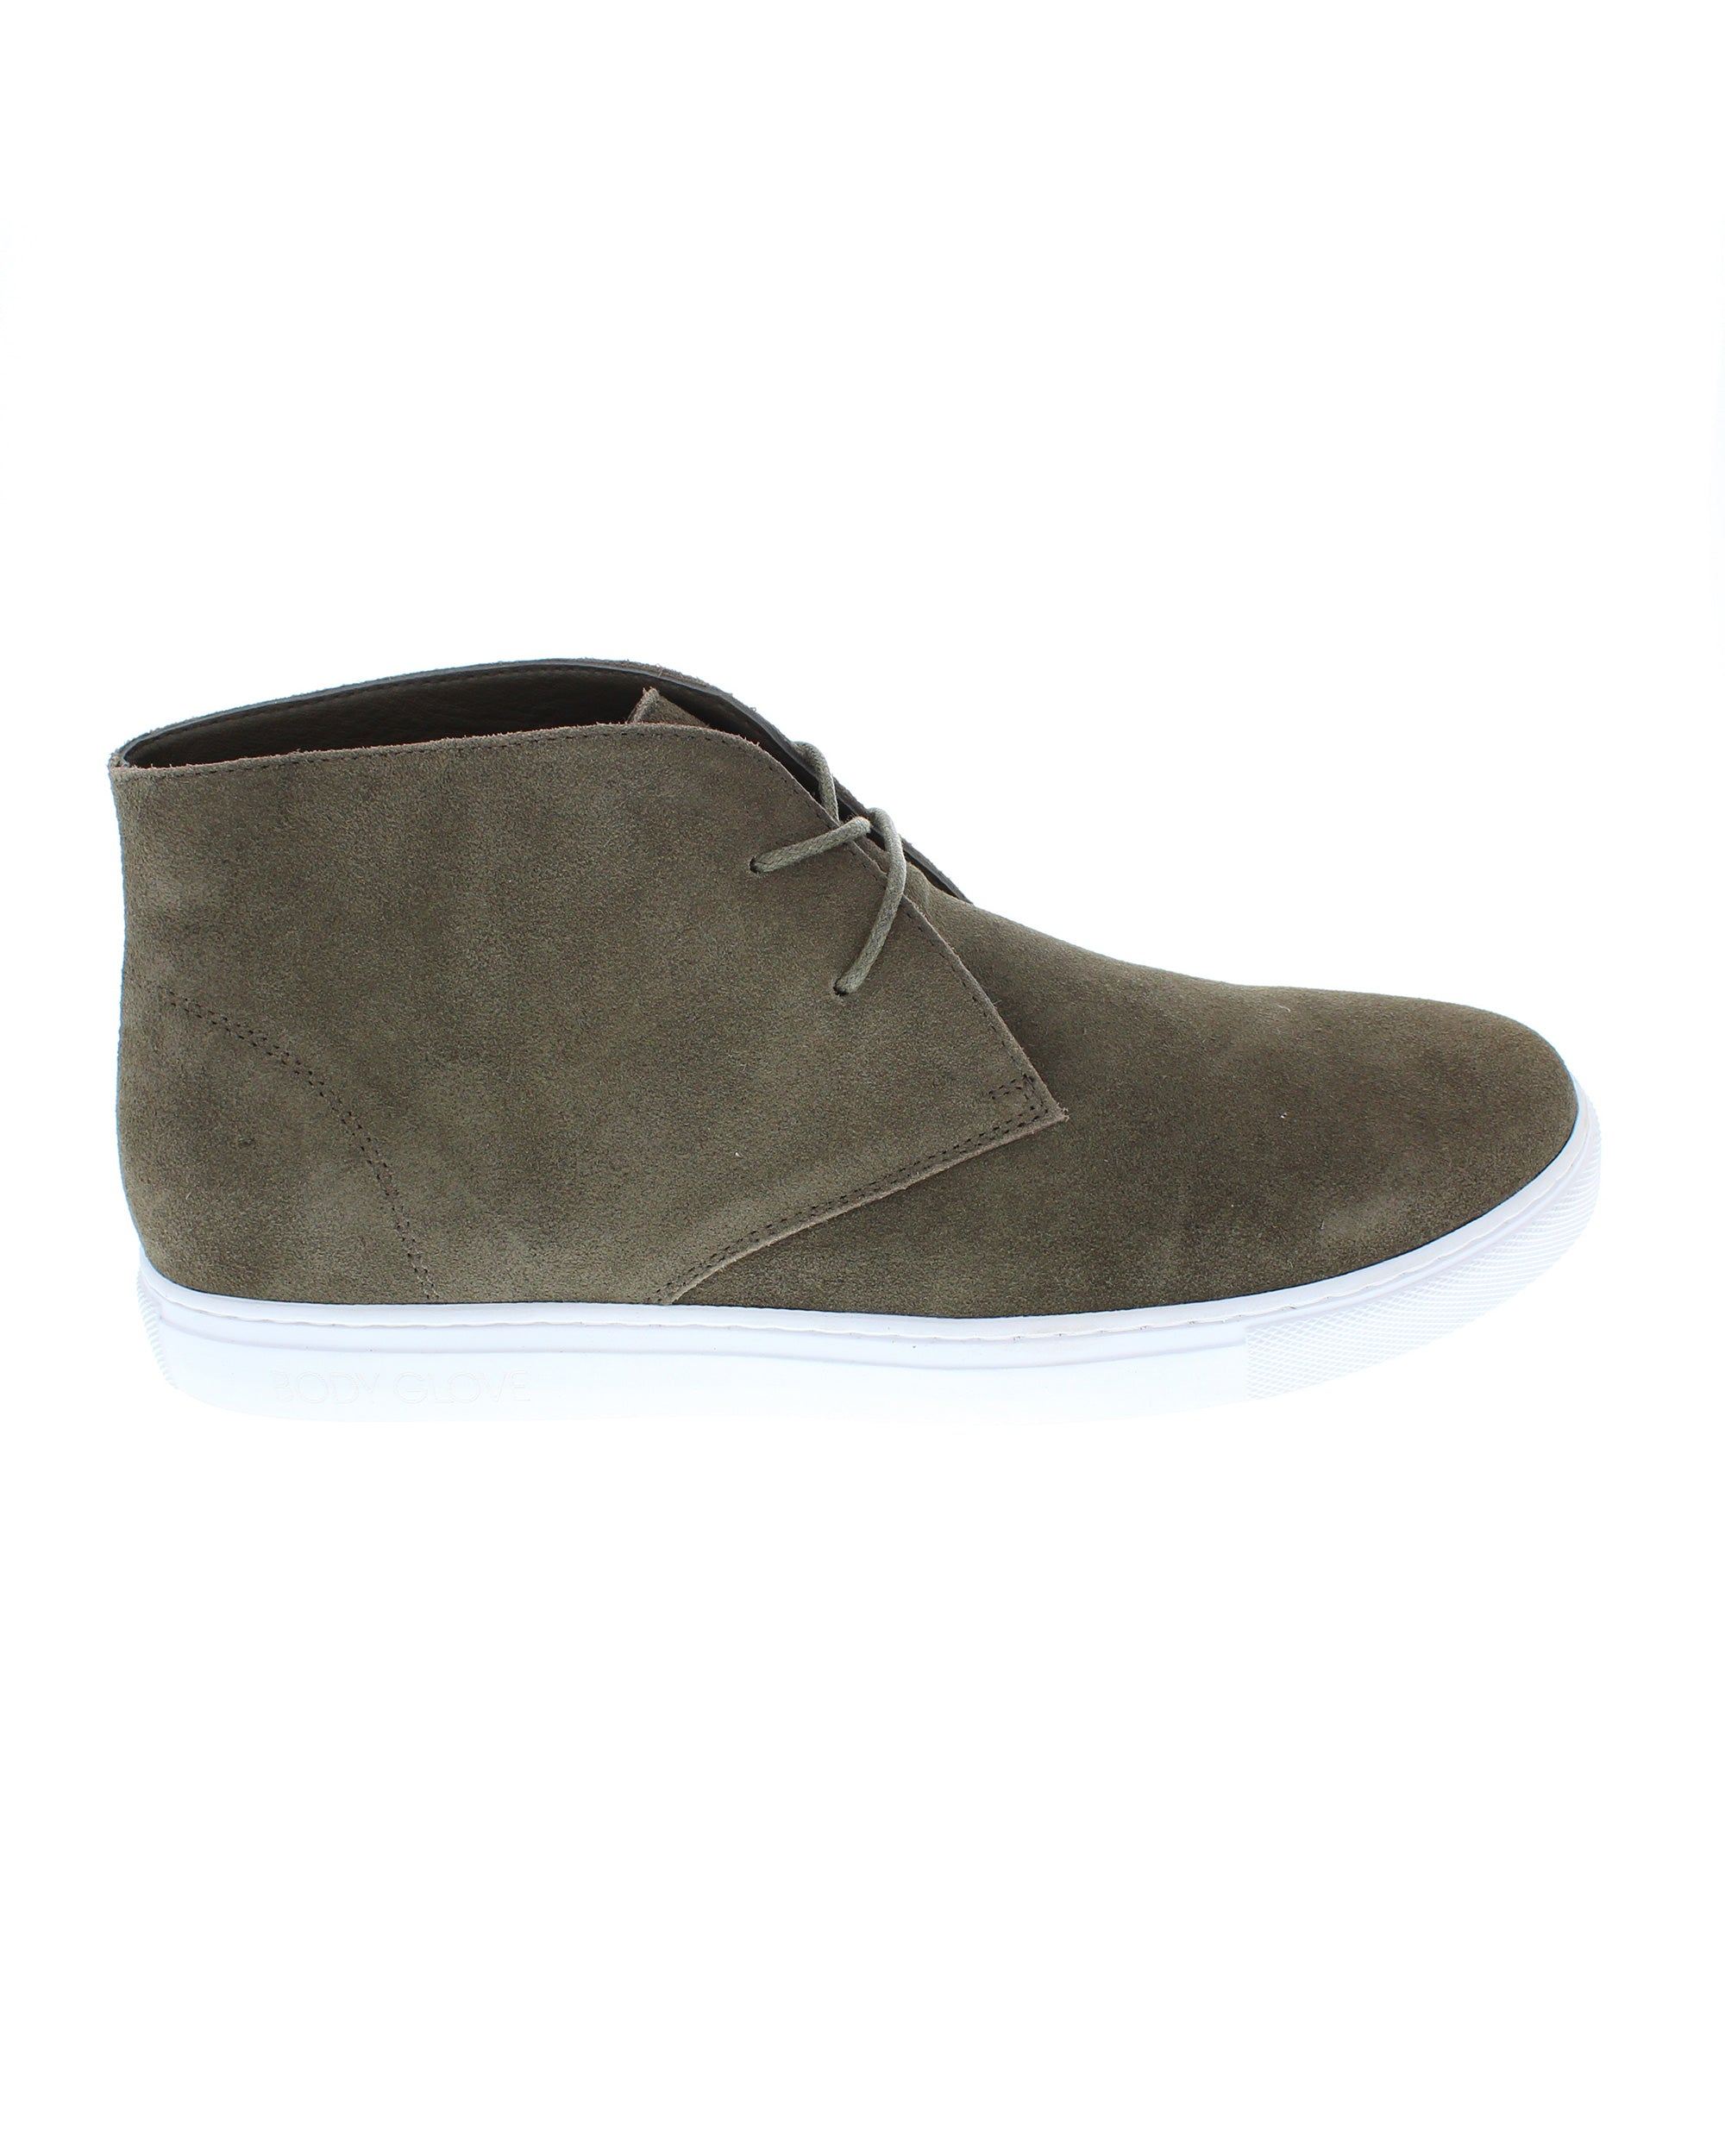 Men's Cayman Suede-Look Chukka